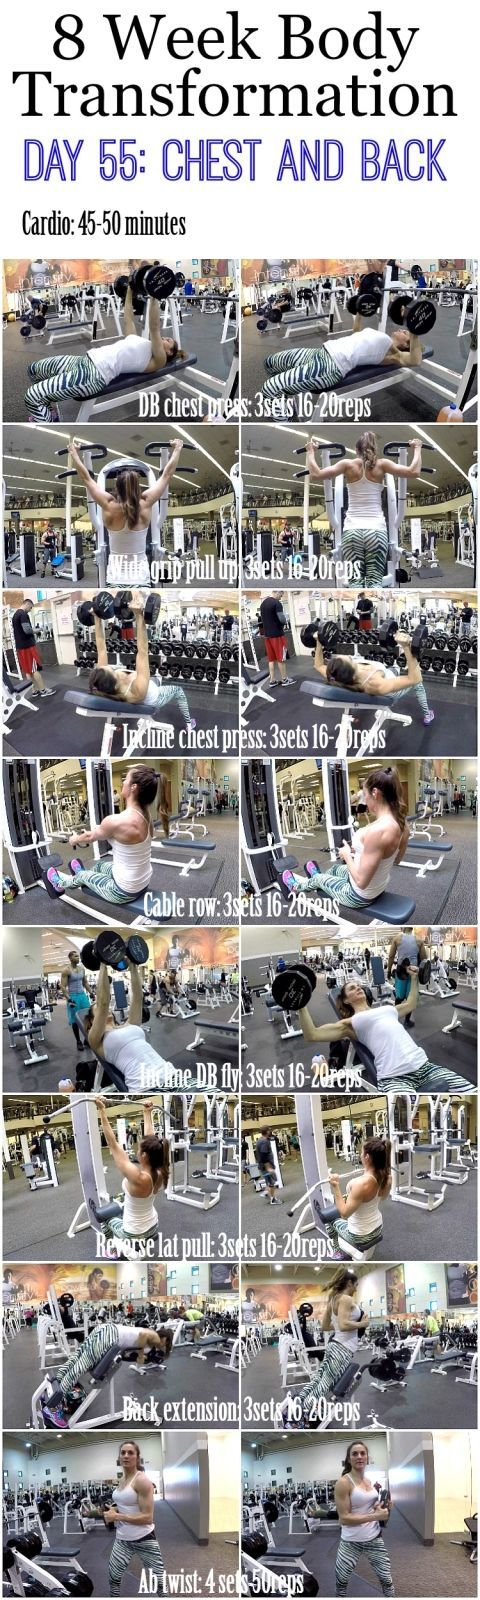 awesome 8 Week Body Transformation: Day 55 CHEST and BACK - Fitness Food Diva